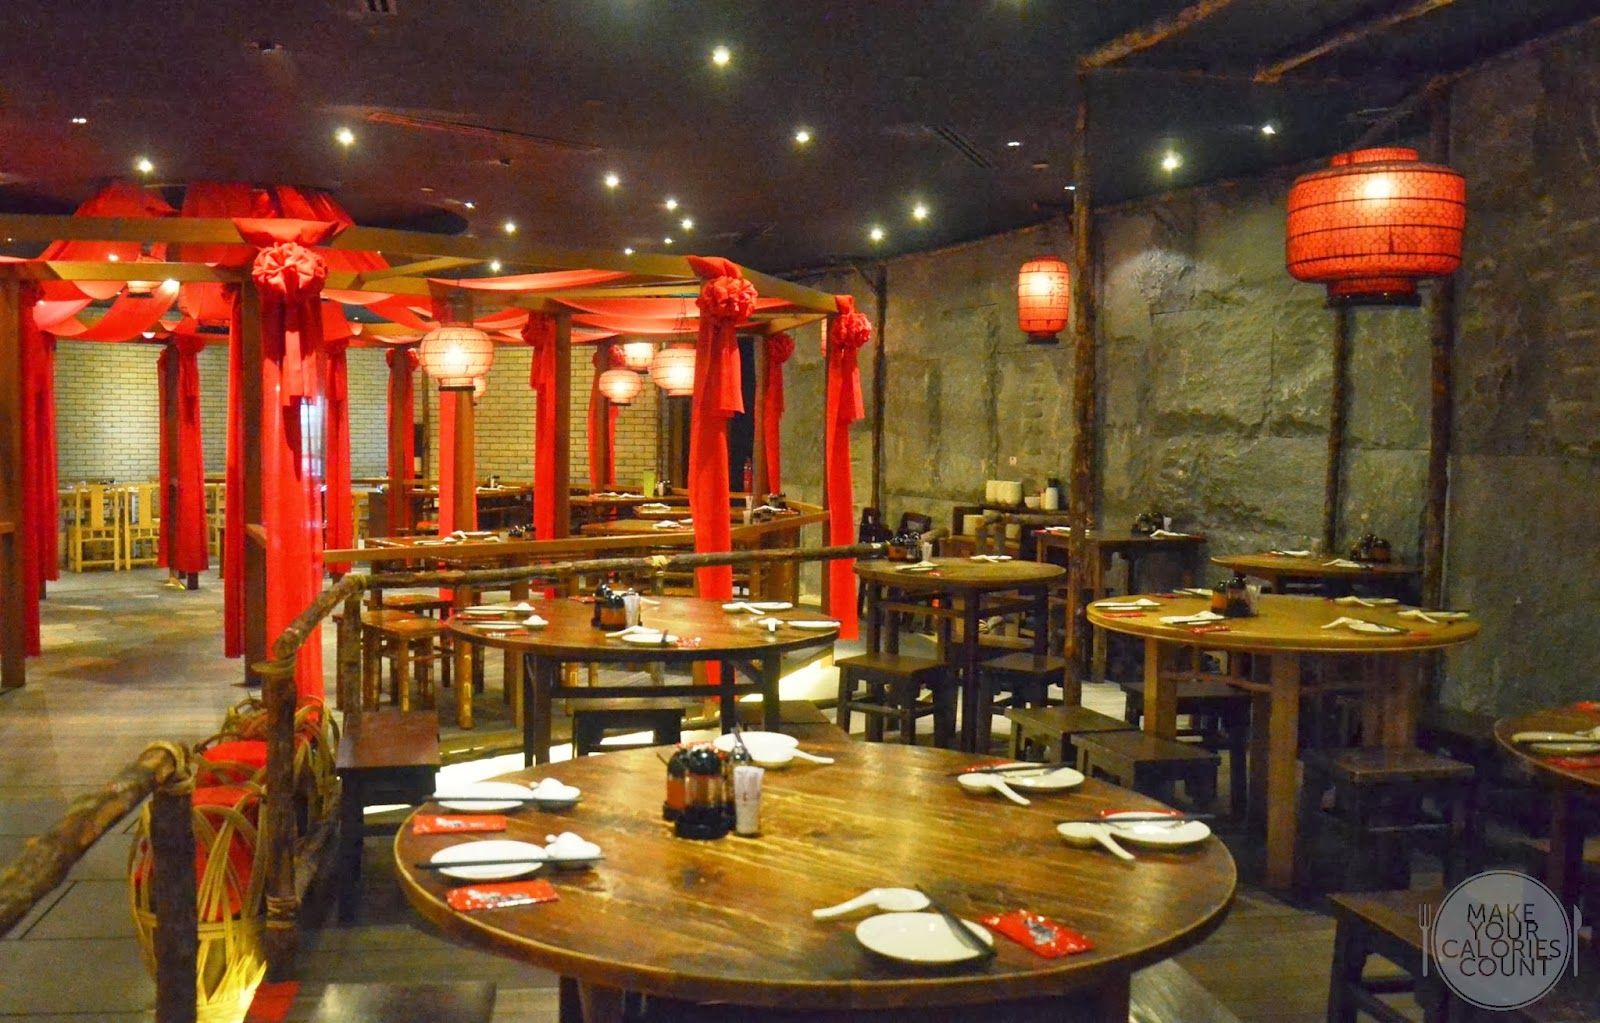 Dian Xiao Er Chinese New Year Meals With A Warm Touch